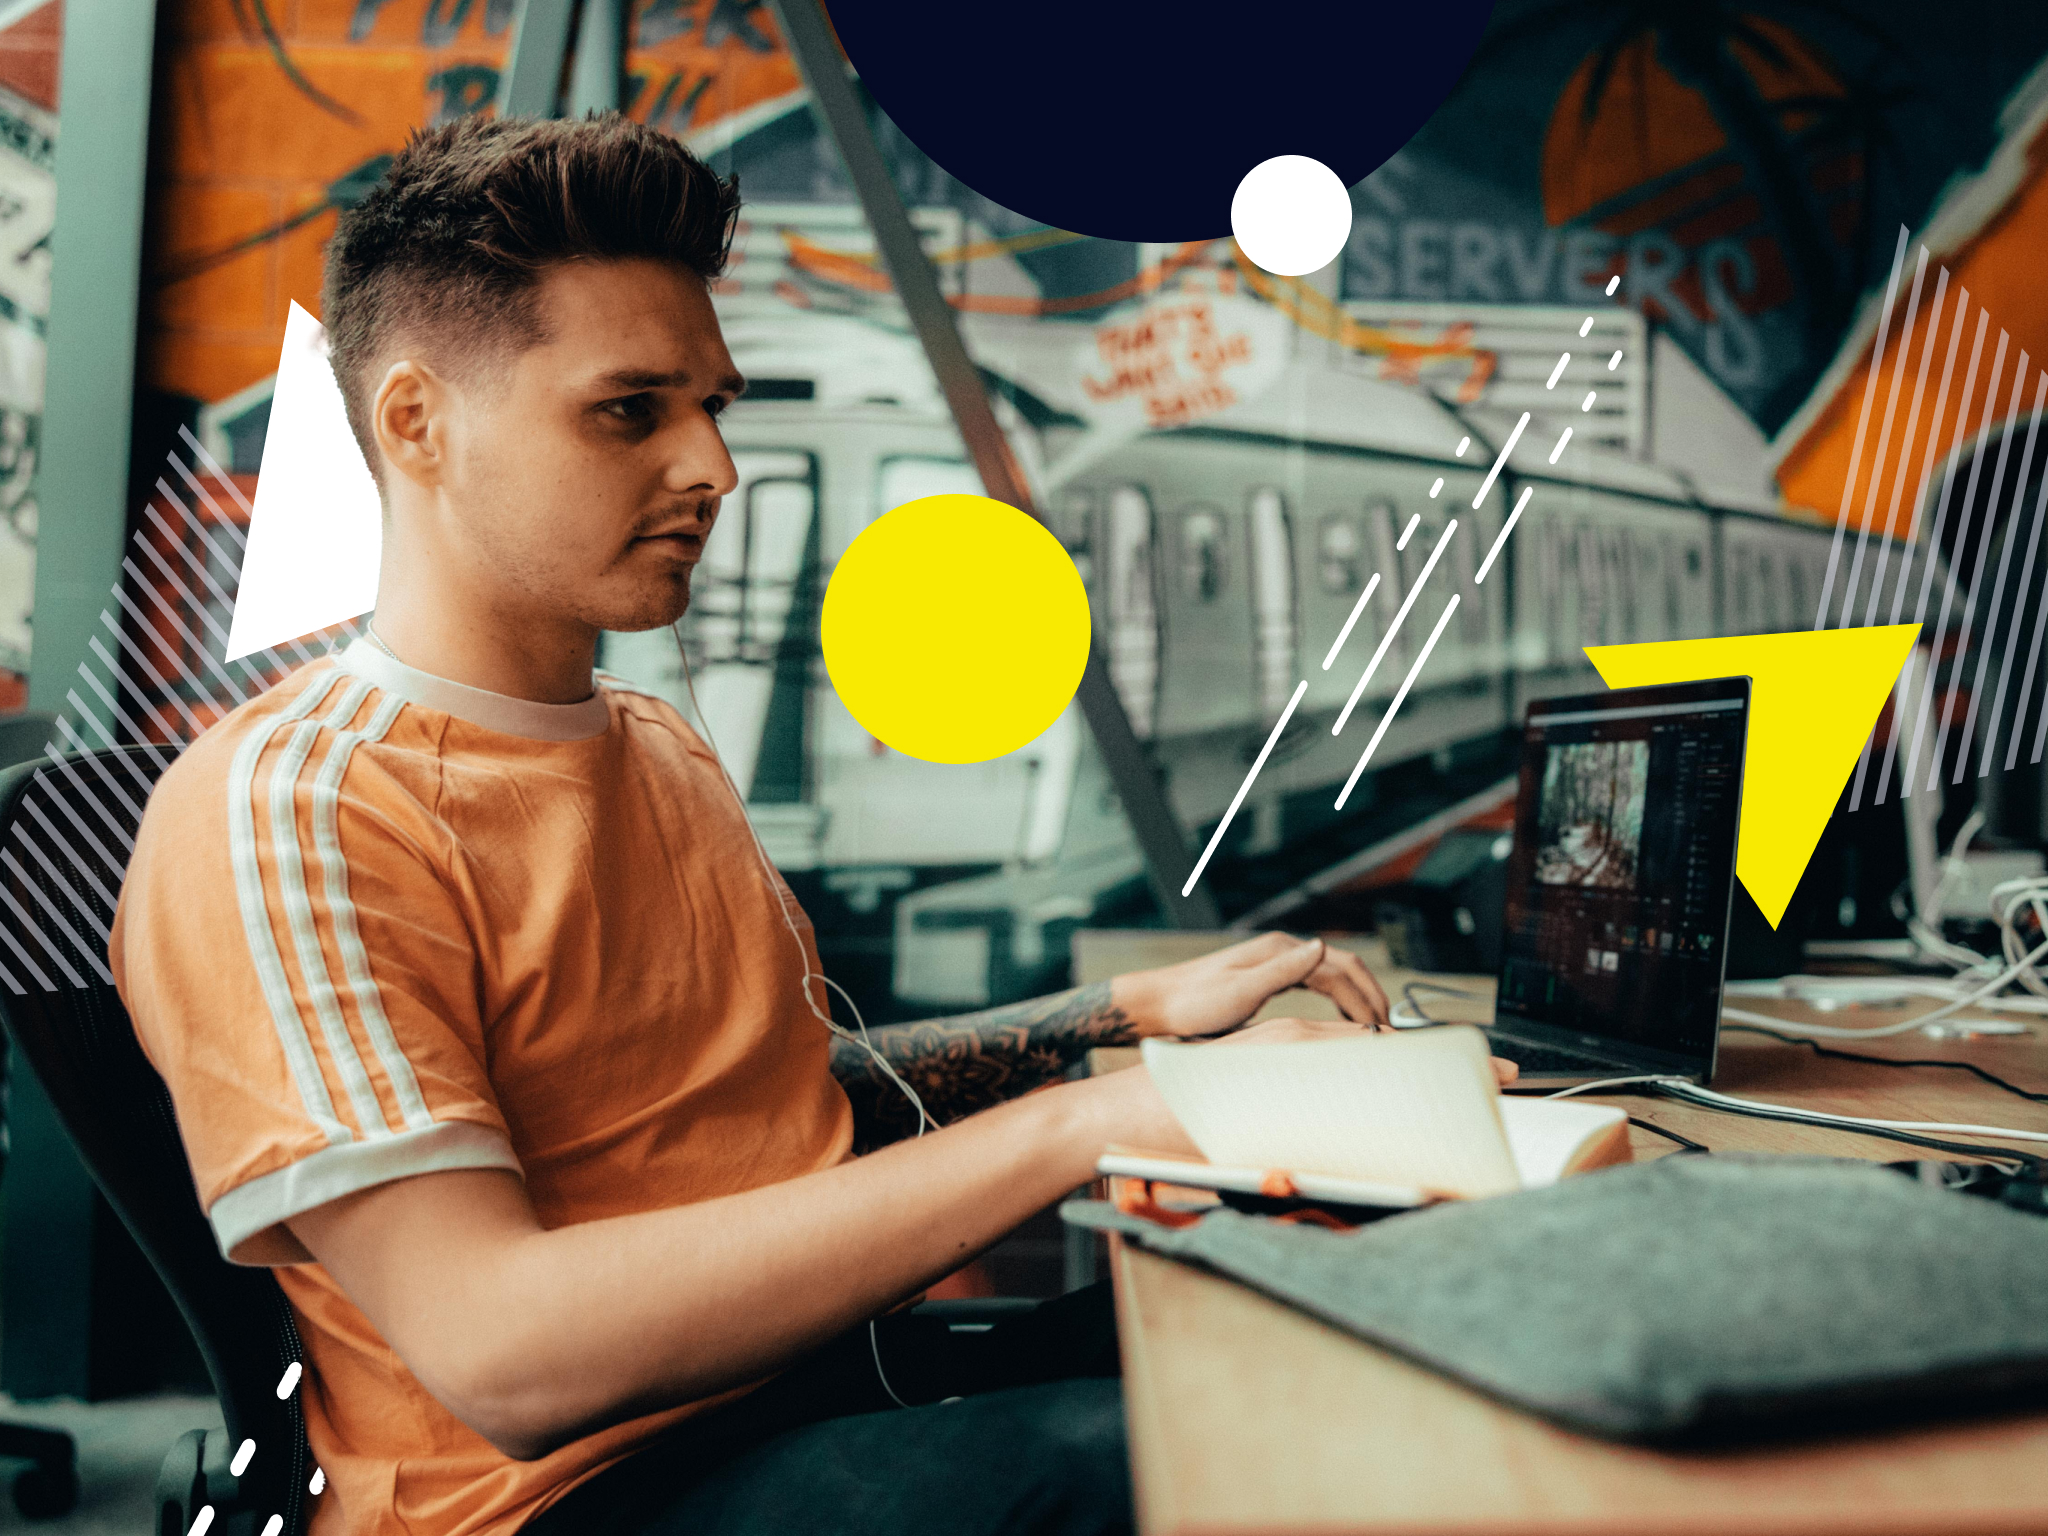 Image of a young man working at a desk looking at laptop to illustrate an article on cross-platform advertising.